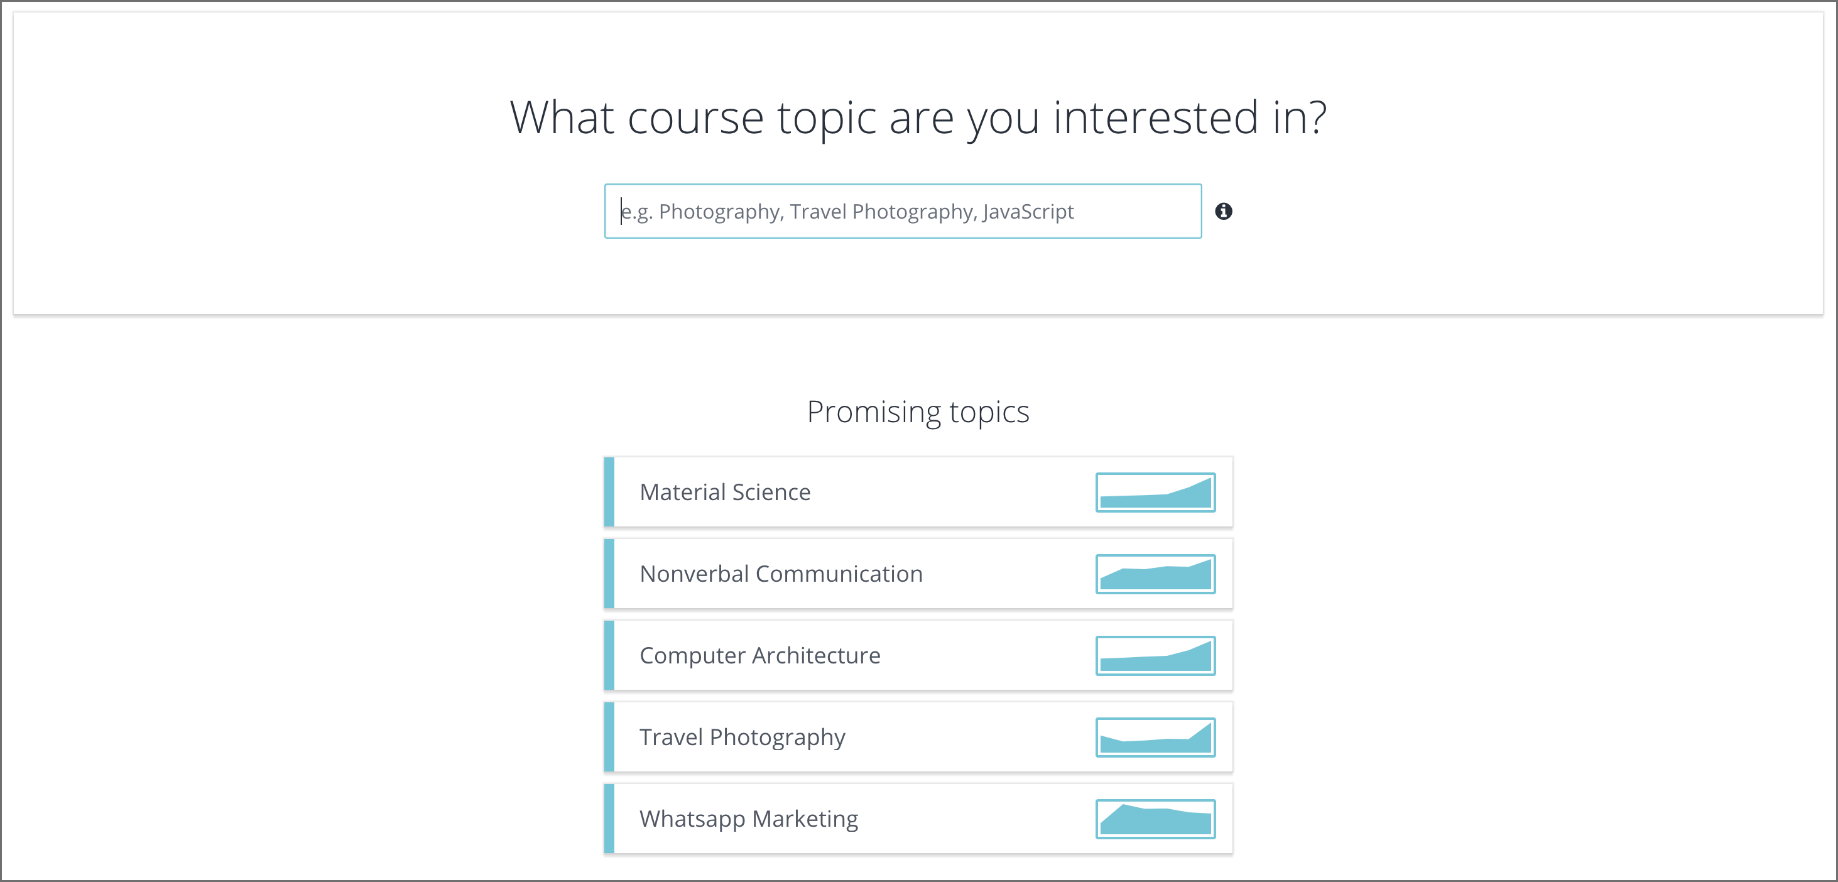 What course topic are you interested in